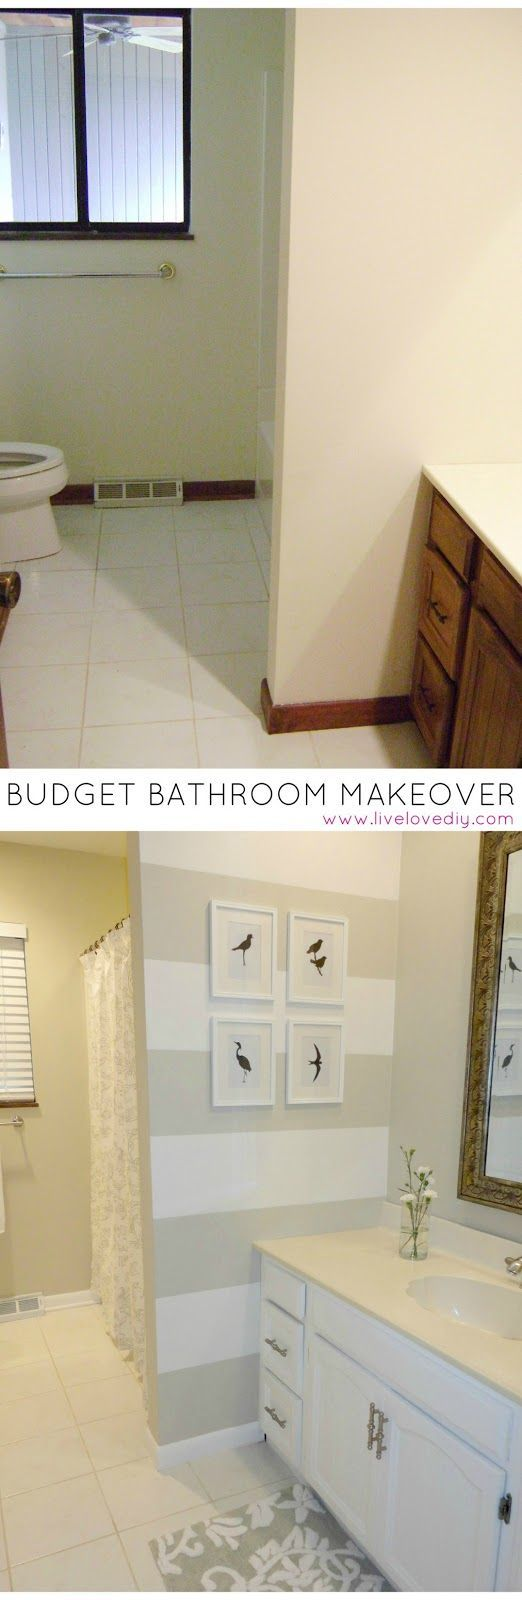 Budget Bathroom Makeover